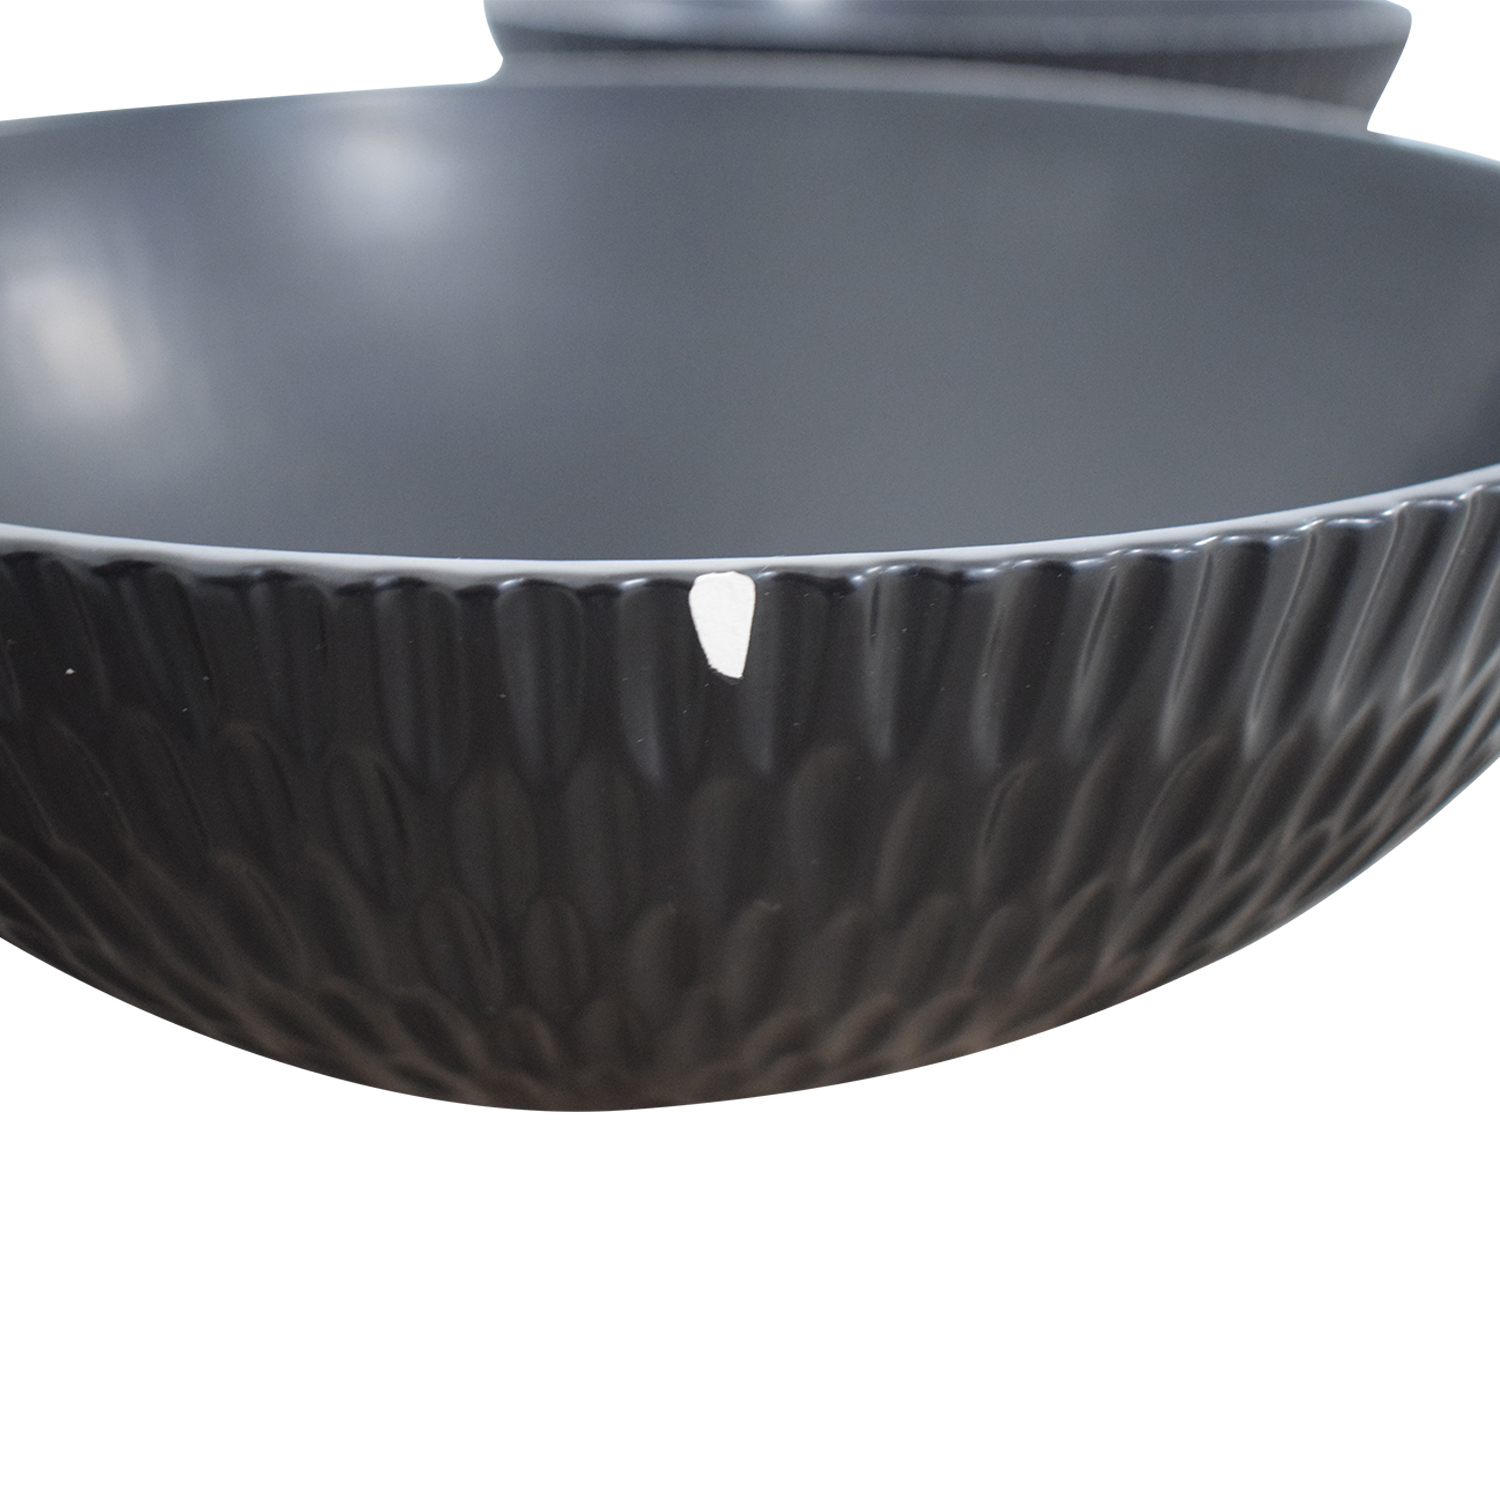 buy Pottery Barn Pottery Barn Black Decorative Bowls online